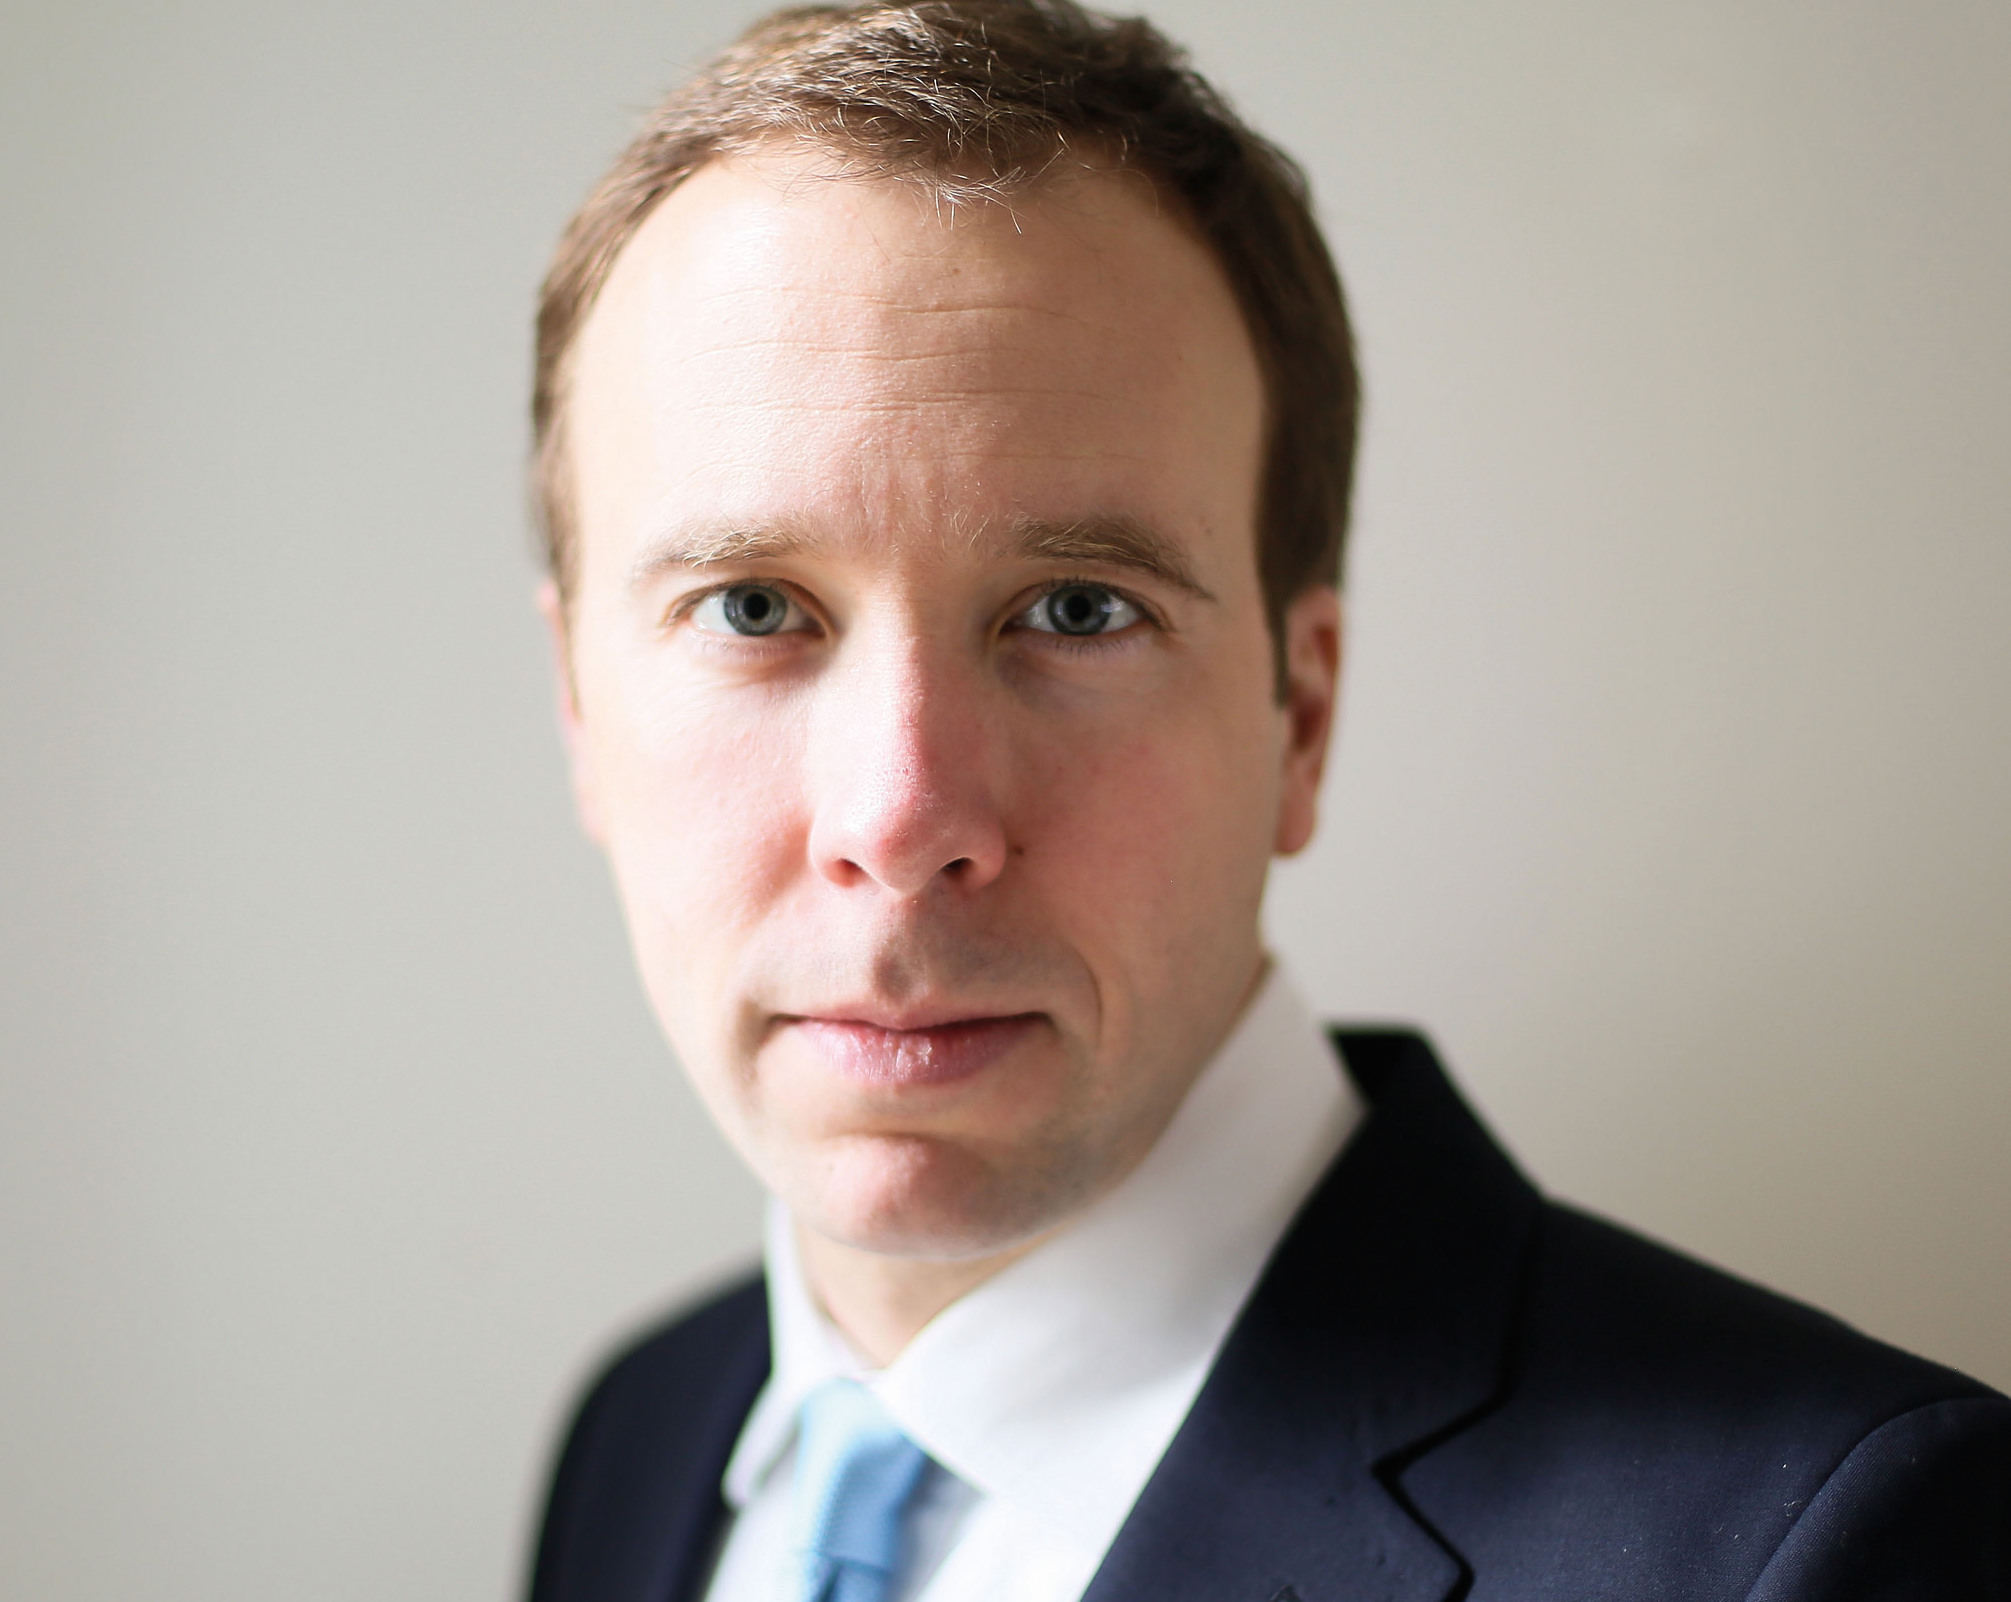 Ex-minister for business and enterprise Matt Hancock takes up new role overseeing Cabinet Office